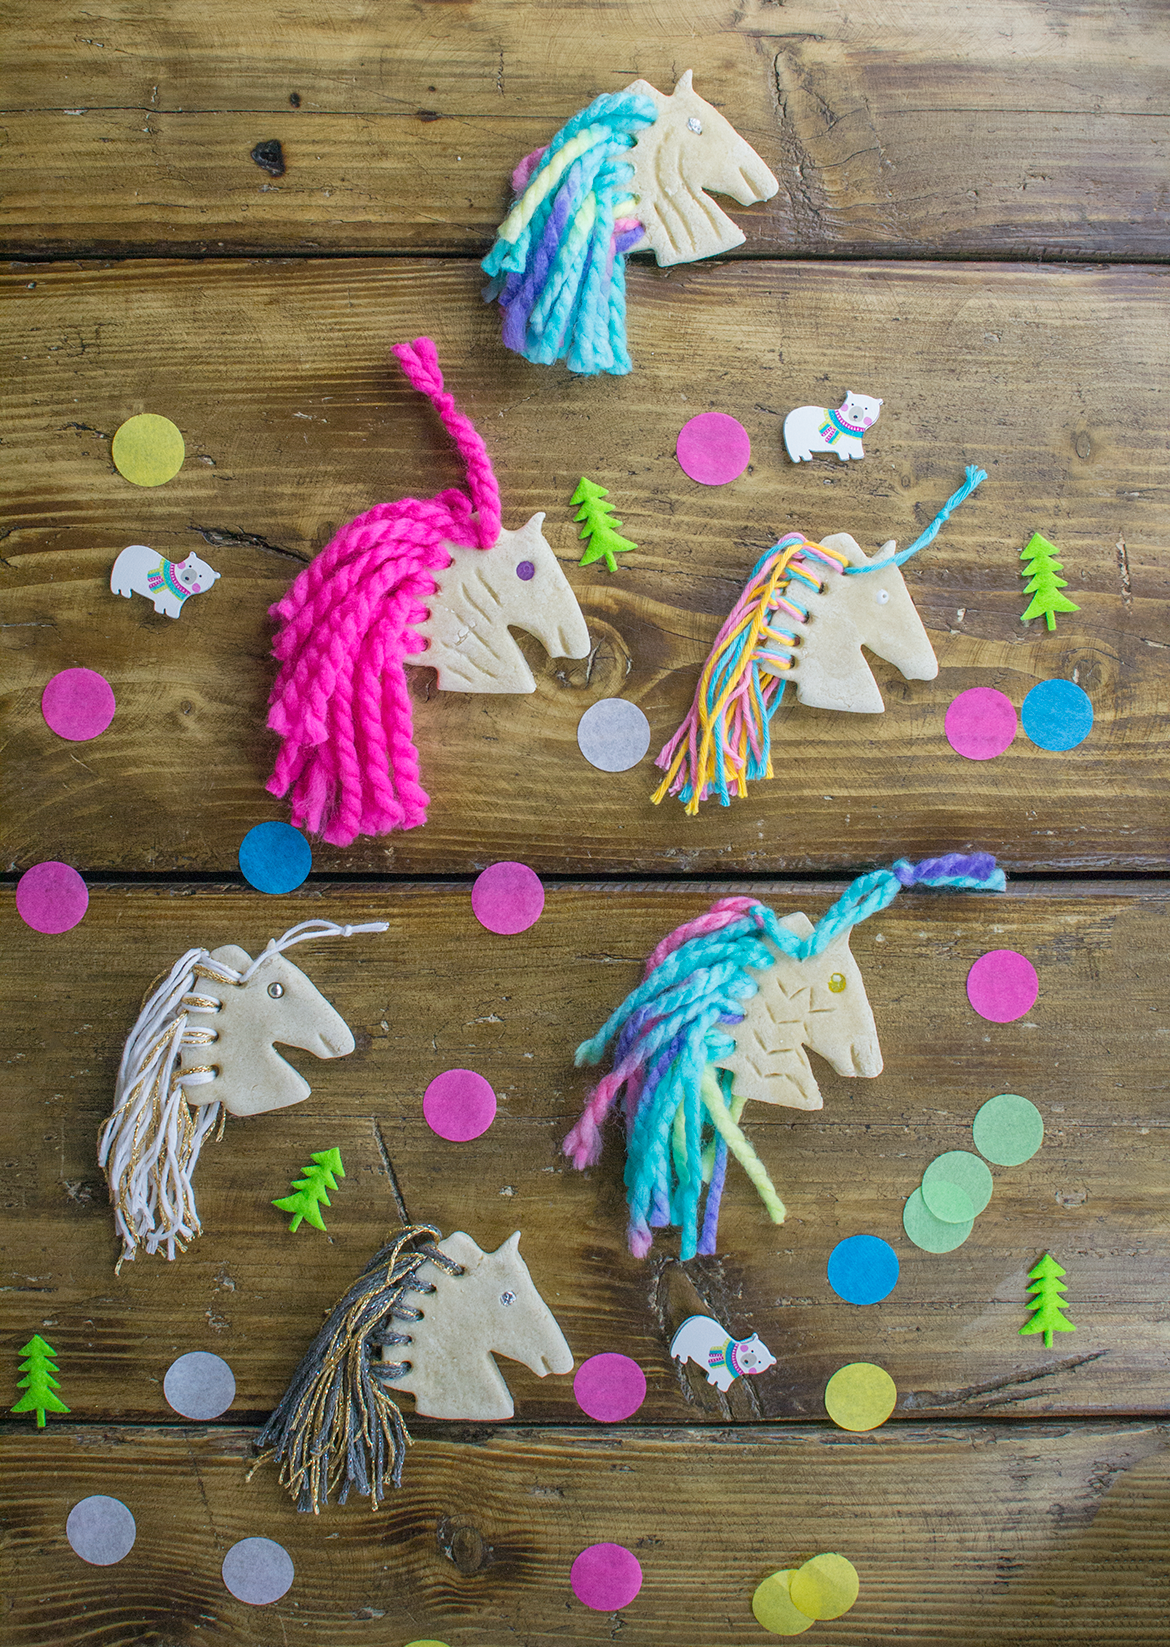 How To Make Rainbow Unicorn Salt Dough Ornaments Let S Do Something Crafty Dough Ornaments Salt Dough Decorations Salt Dough Christmas Ornaments